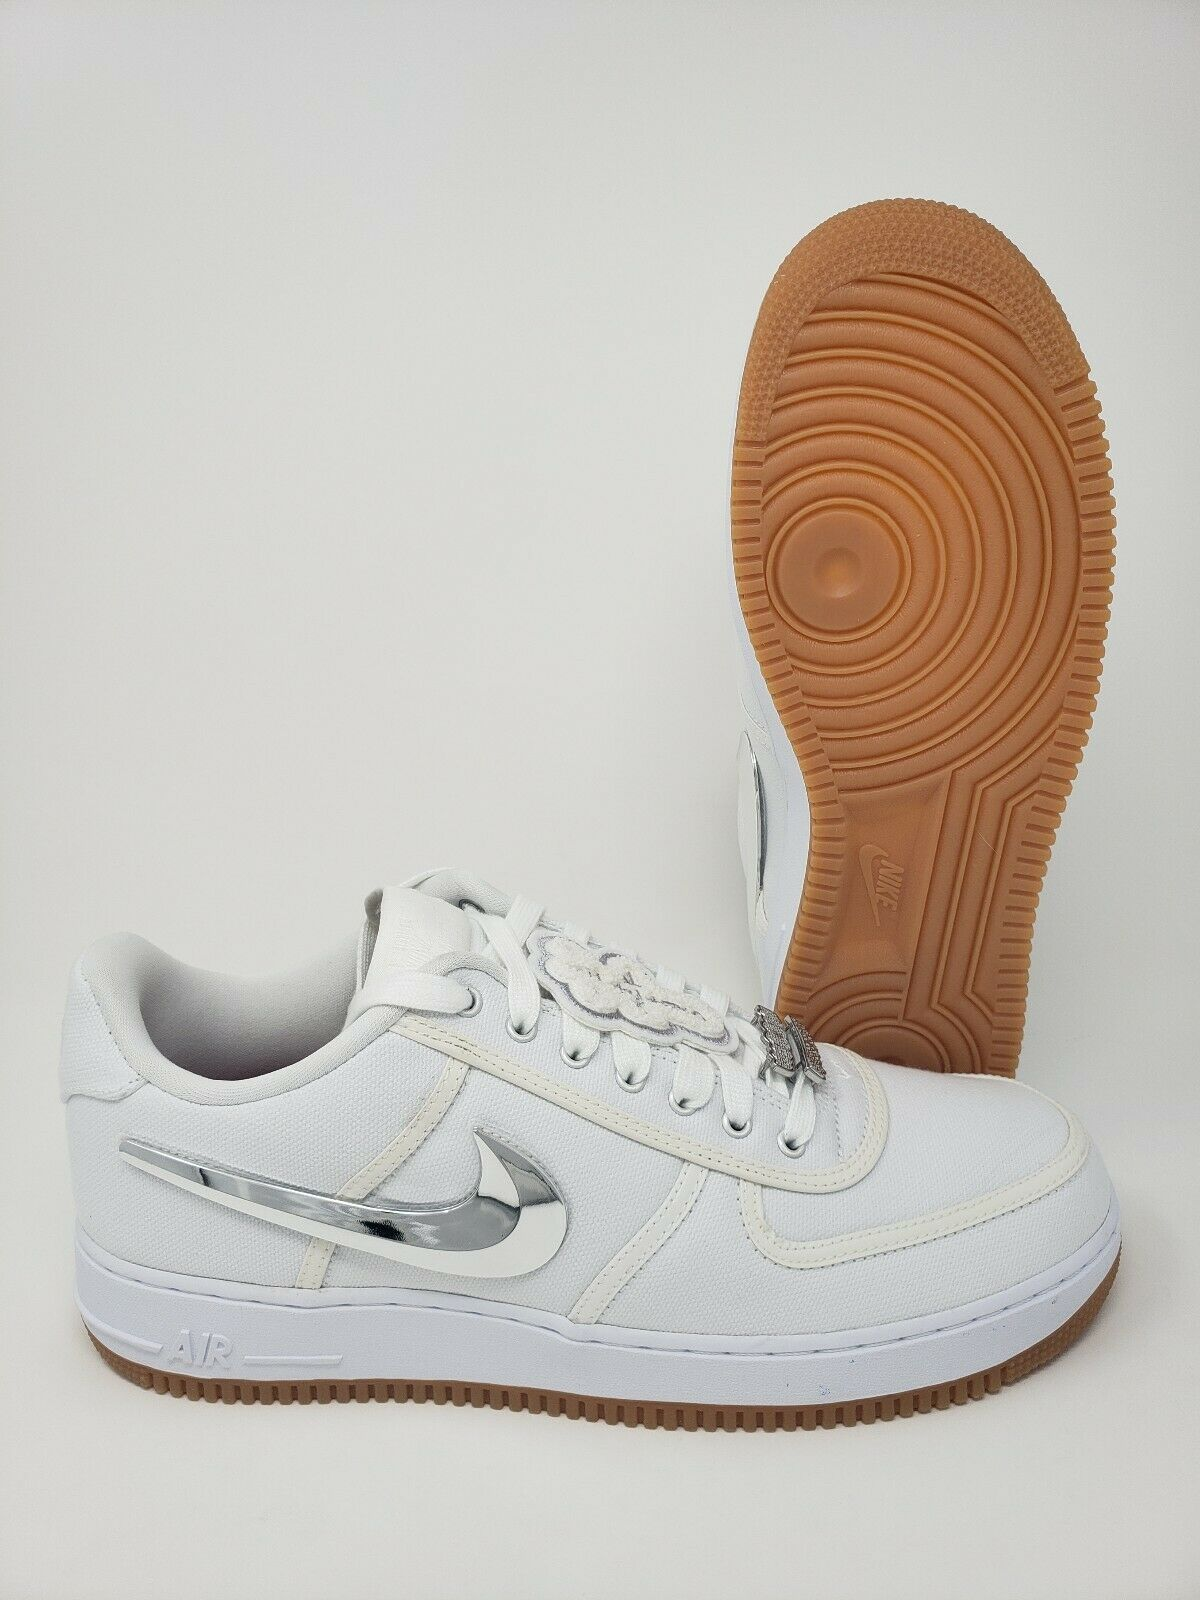 Travis Scott x Air Force 1 OG DS Mens Size 13 With Special Box And Extra Nike...